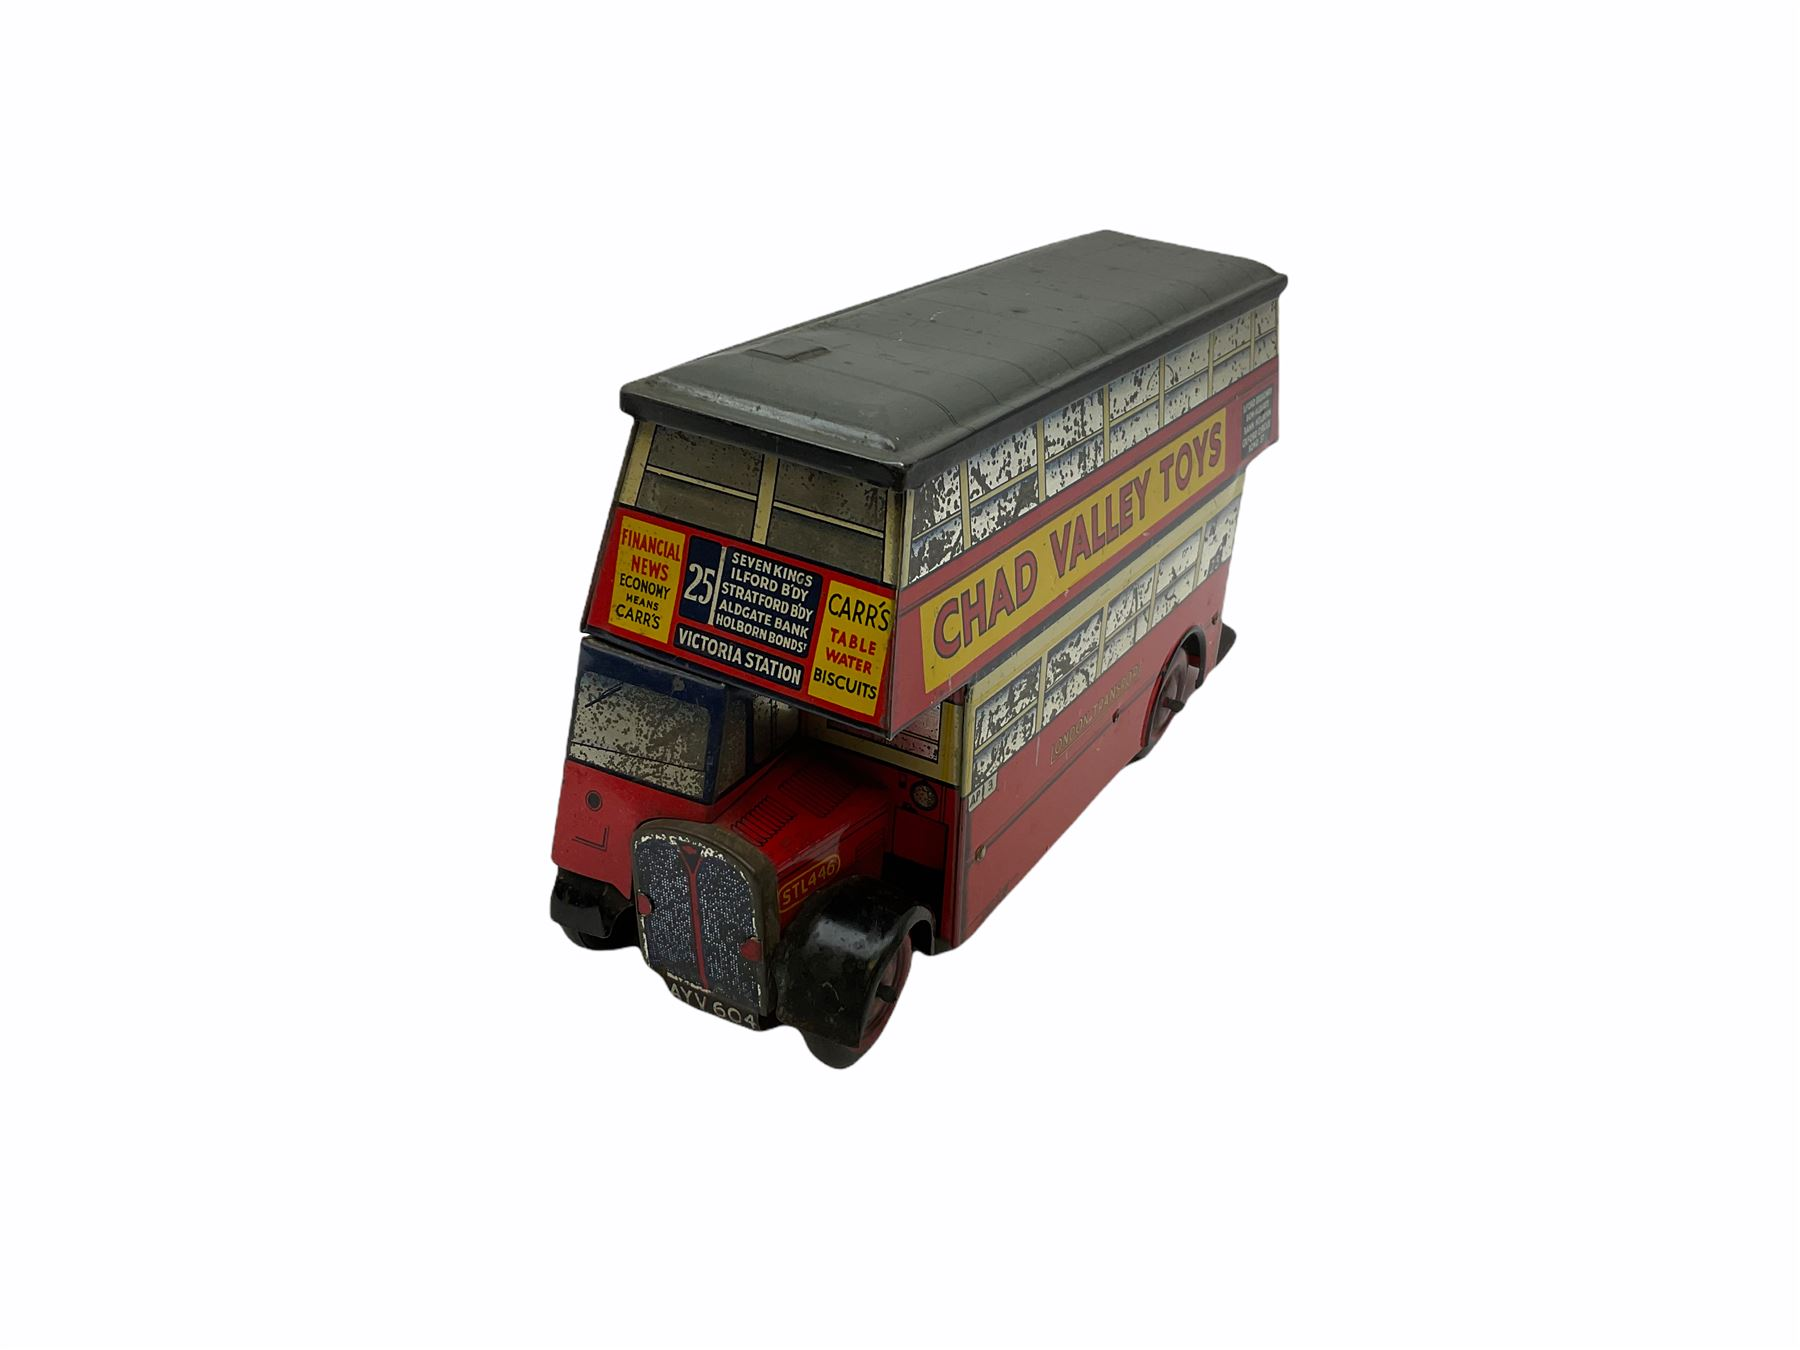 Chad Valley Carr�s Table Water Biscuits London Transport STL446 double decker bus biscuit tin - Image 3 of 6